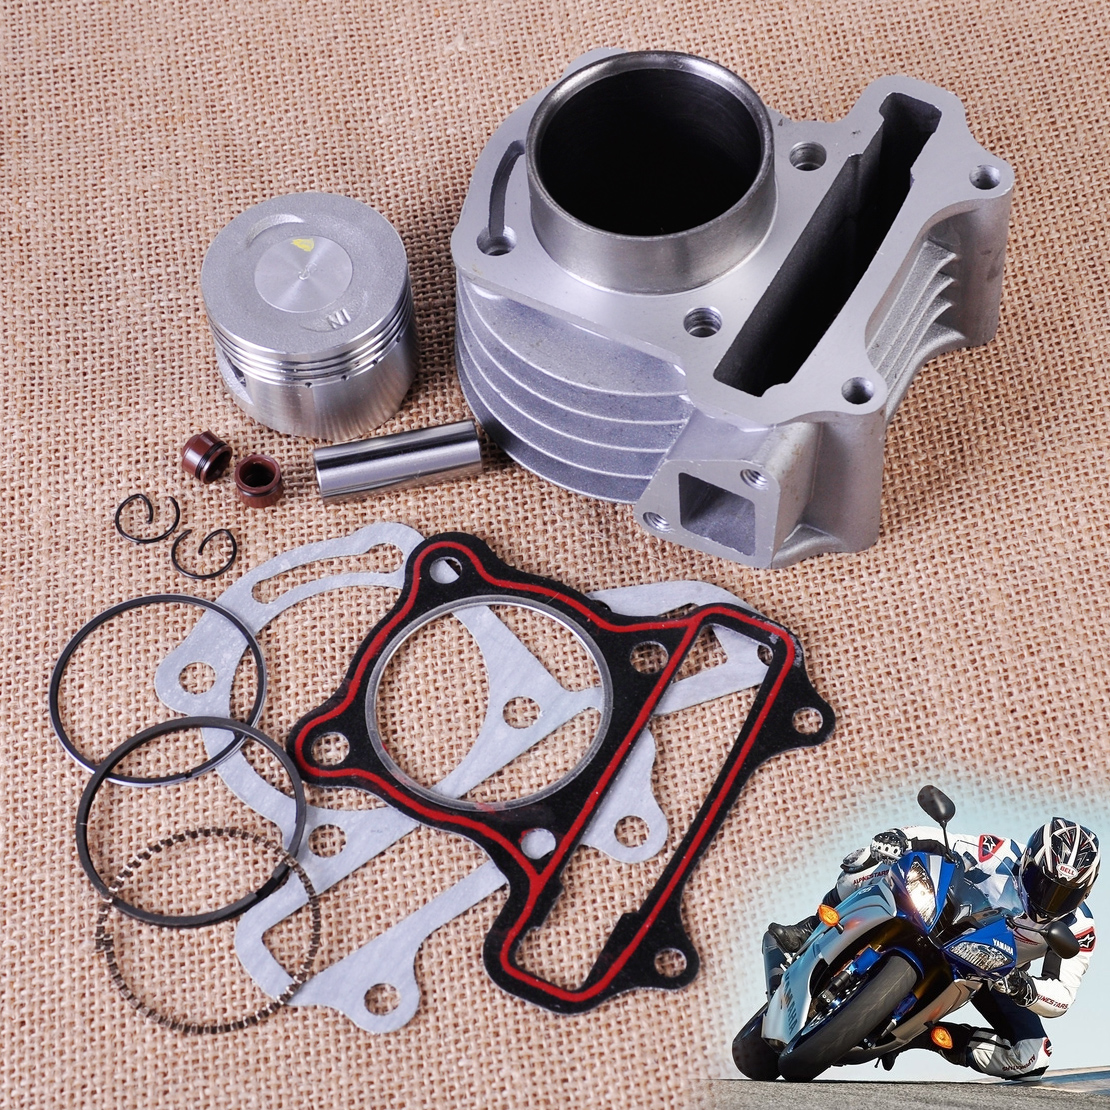 47mm Big Bore Kit Cylinder Piston Rings fit GY6 50cc 60cc 80cc 4 Stroke Scooter Moped ATV 139QMB 139QMA engine